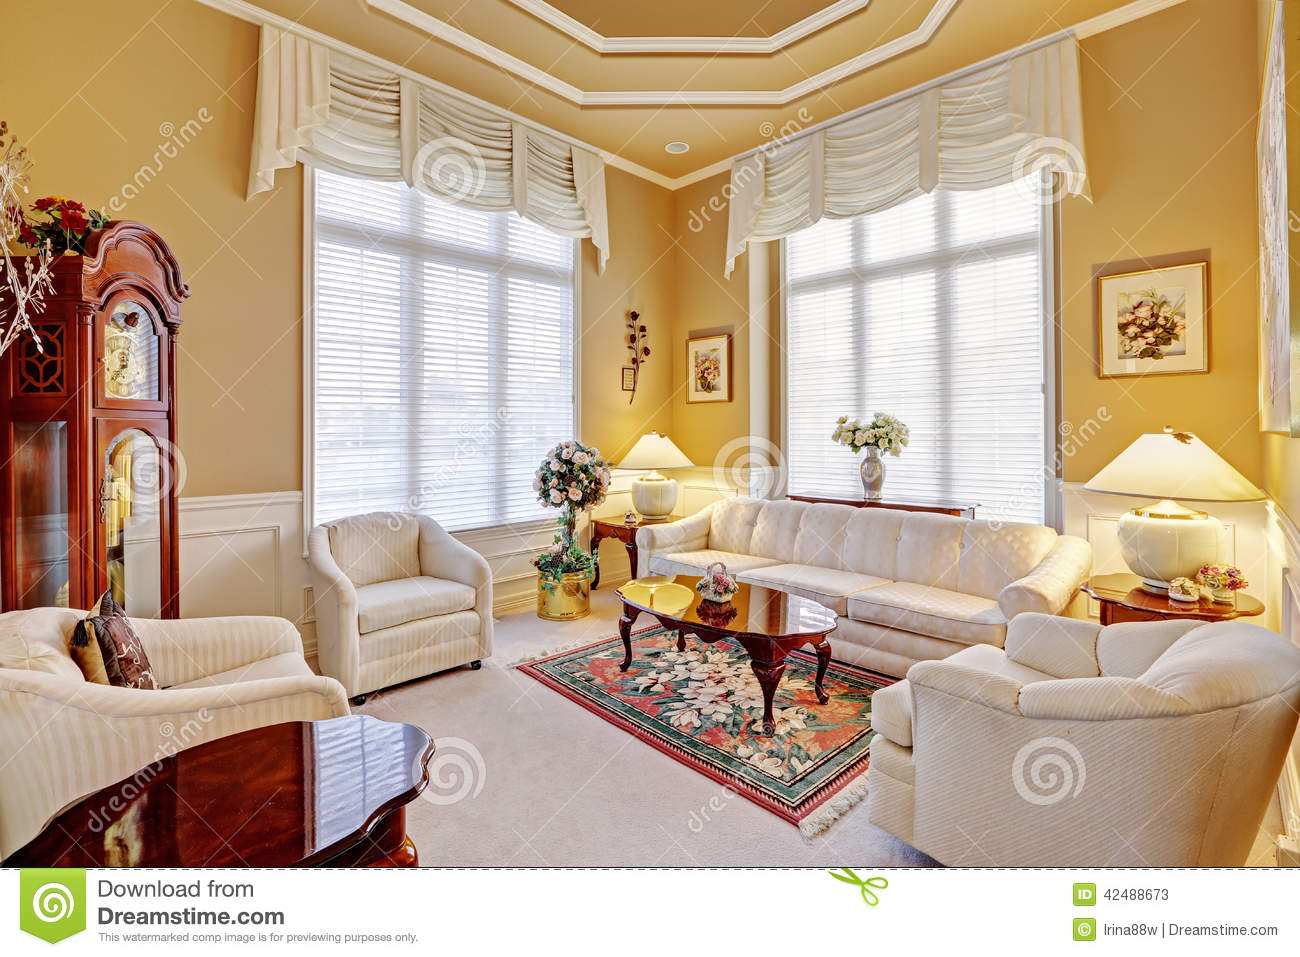 Luxury Room Interior With Antique Furniture Stock Image